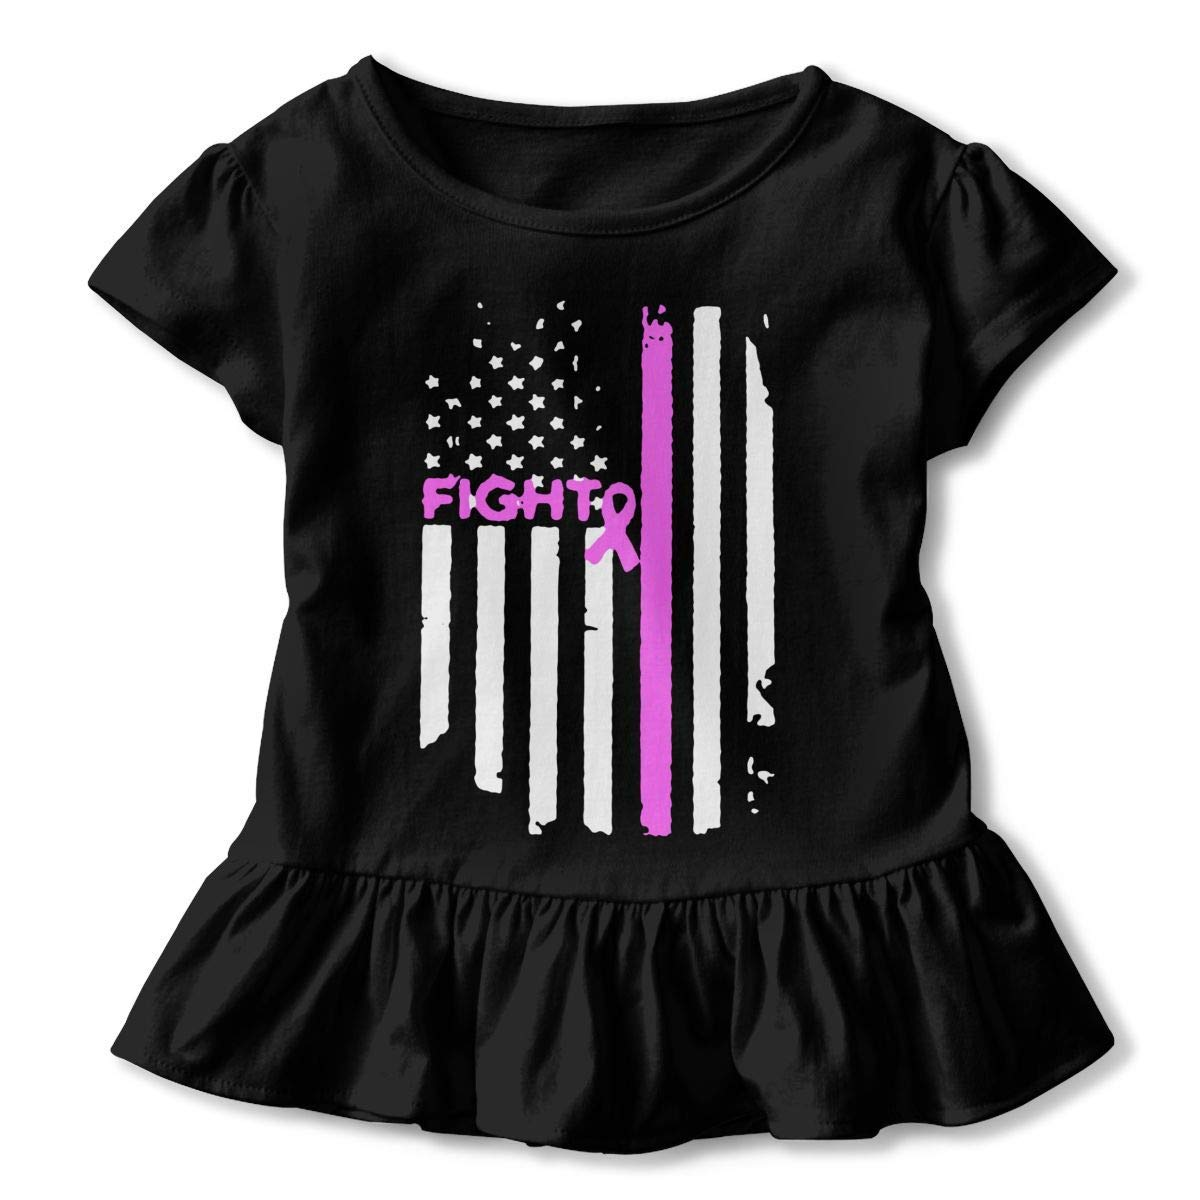 2-6T PMsunglasses Short Sleeve Fight Breast Cancer Shirts for Kids Ruffled Blouse Clothes with Falbala